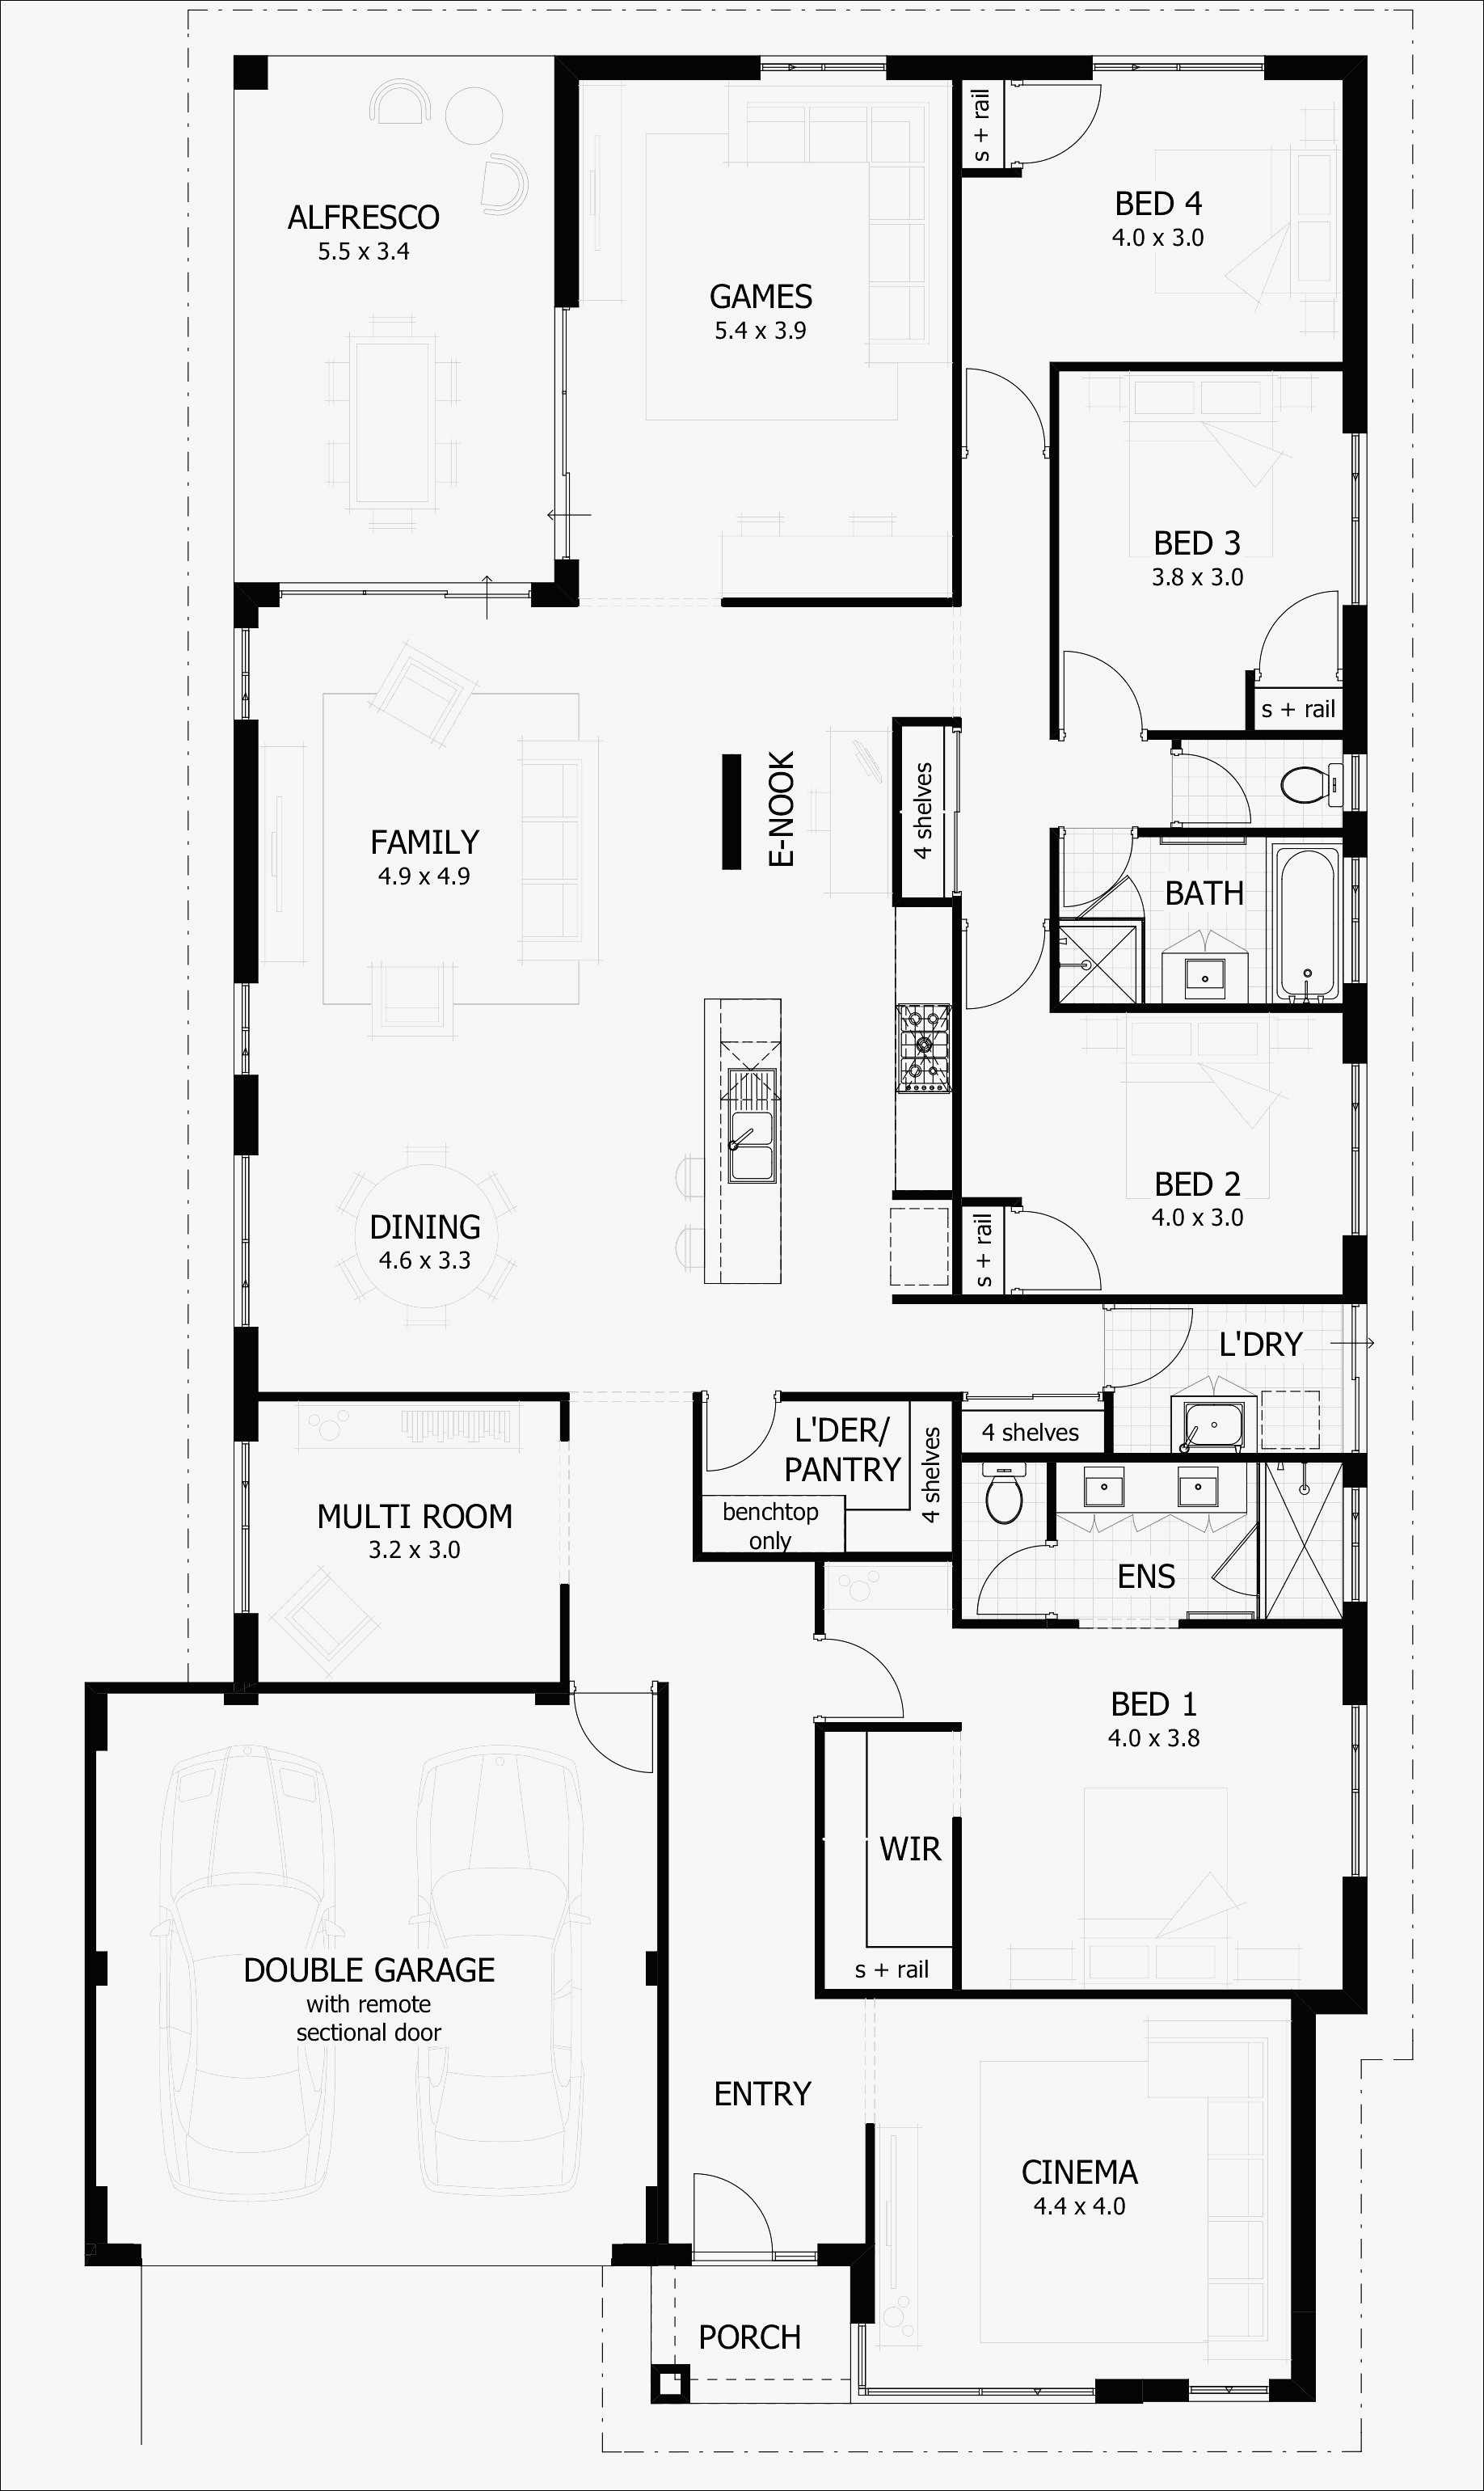 Marlette Homes Floor Plans Fresh Marlette Mobile Home Wiring - Manufactured Home Wiring Diagram